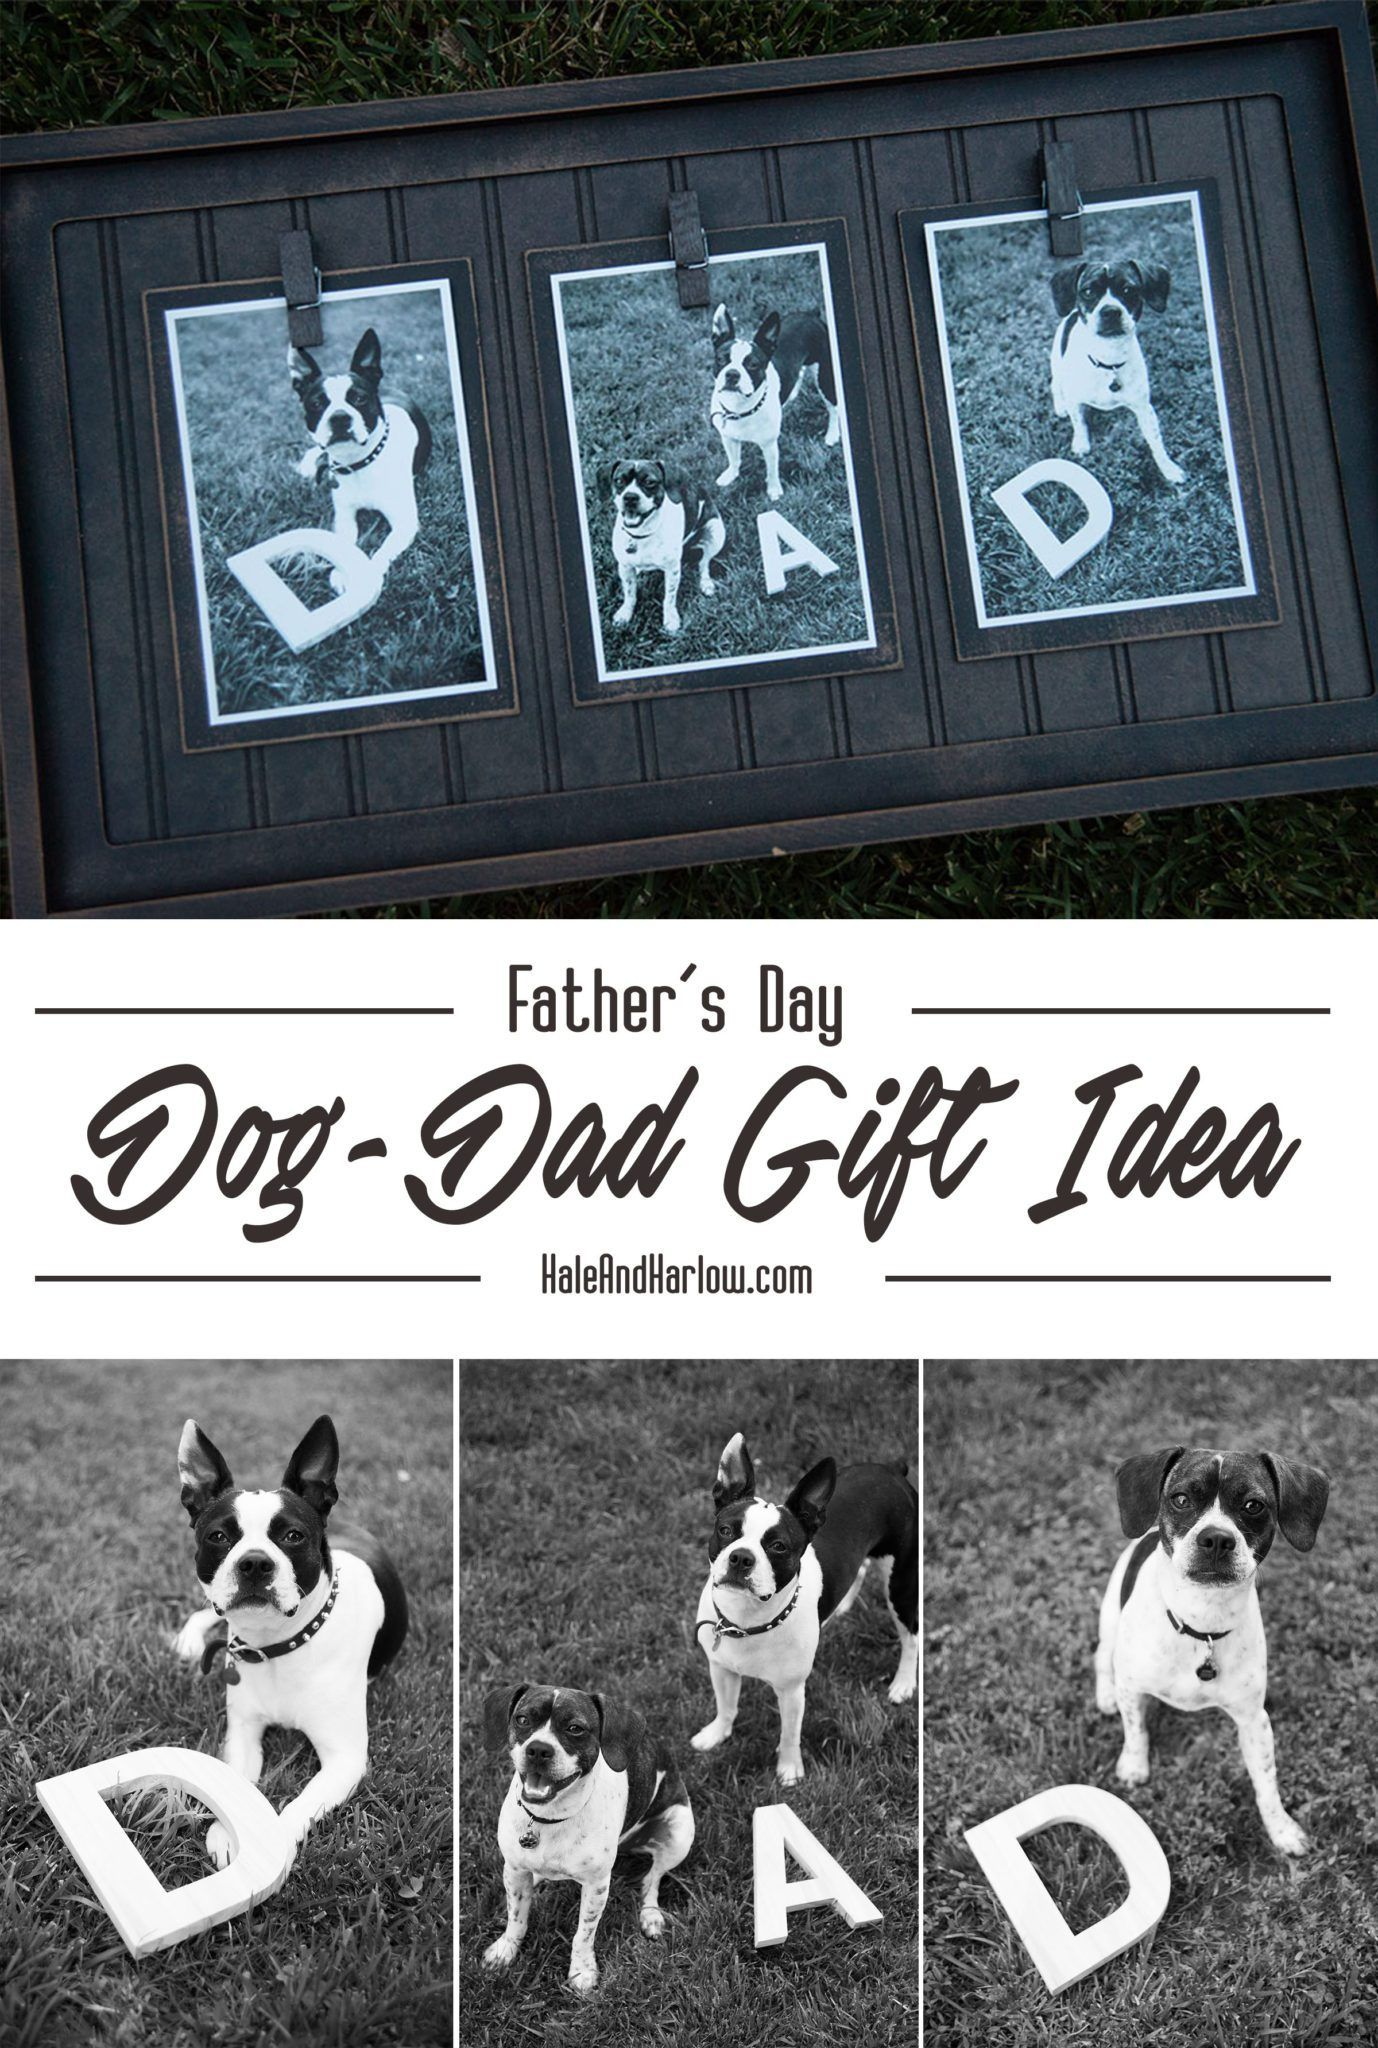 Gifts From The Dog Part - 26: Your Search For Fatheru0027s Day Gift Ideas Ends Here! Recognize All Those Dog  Dads With